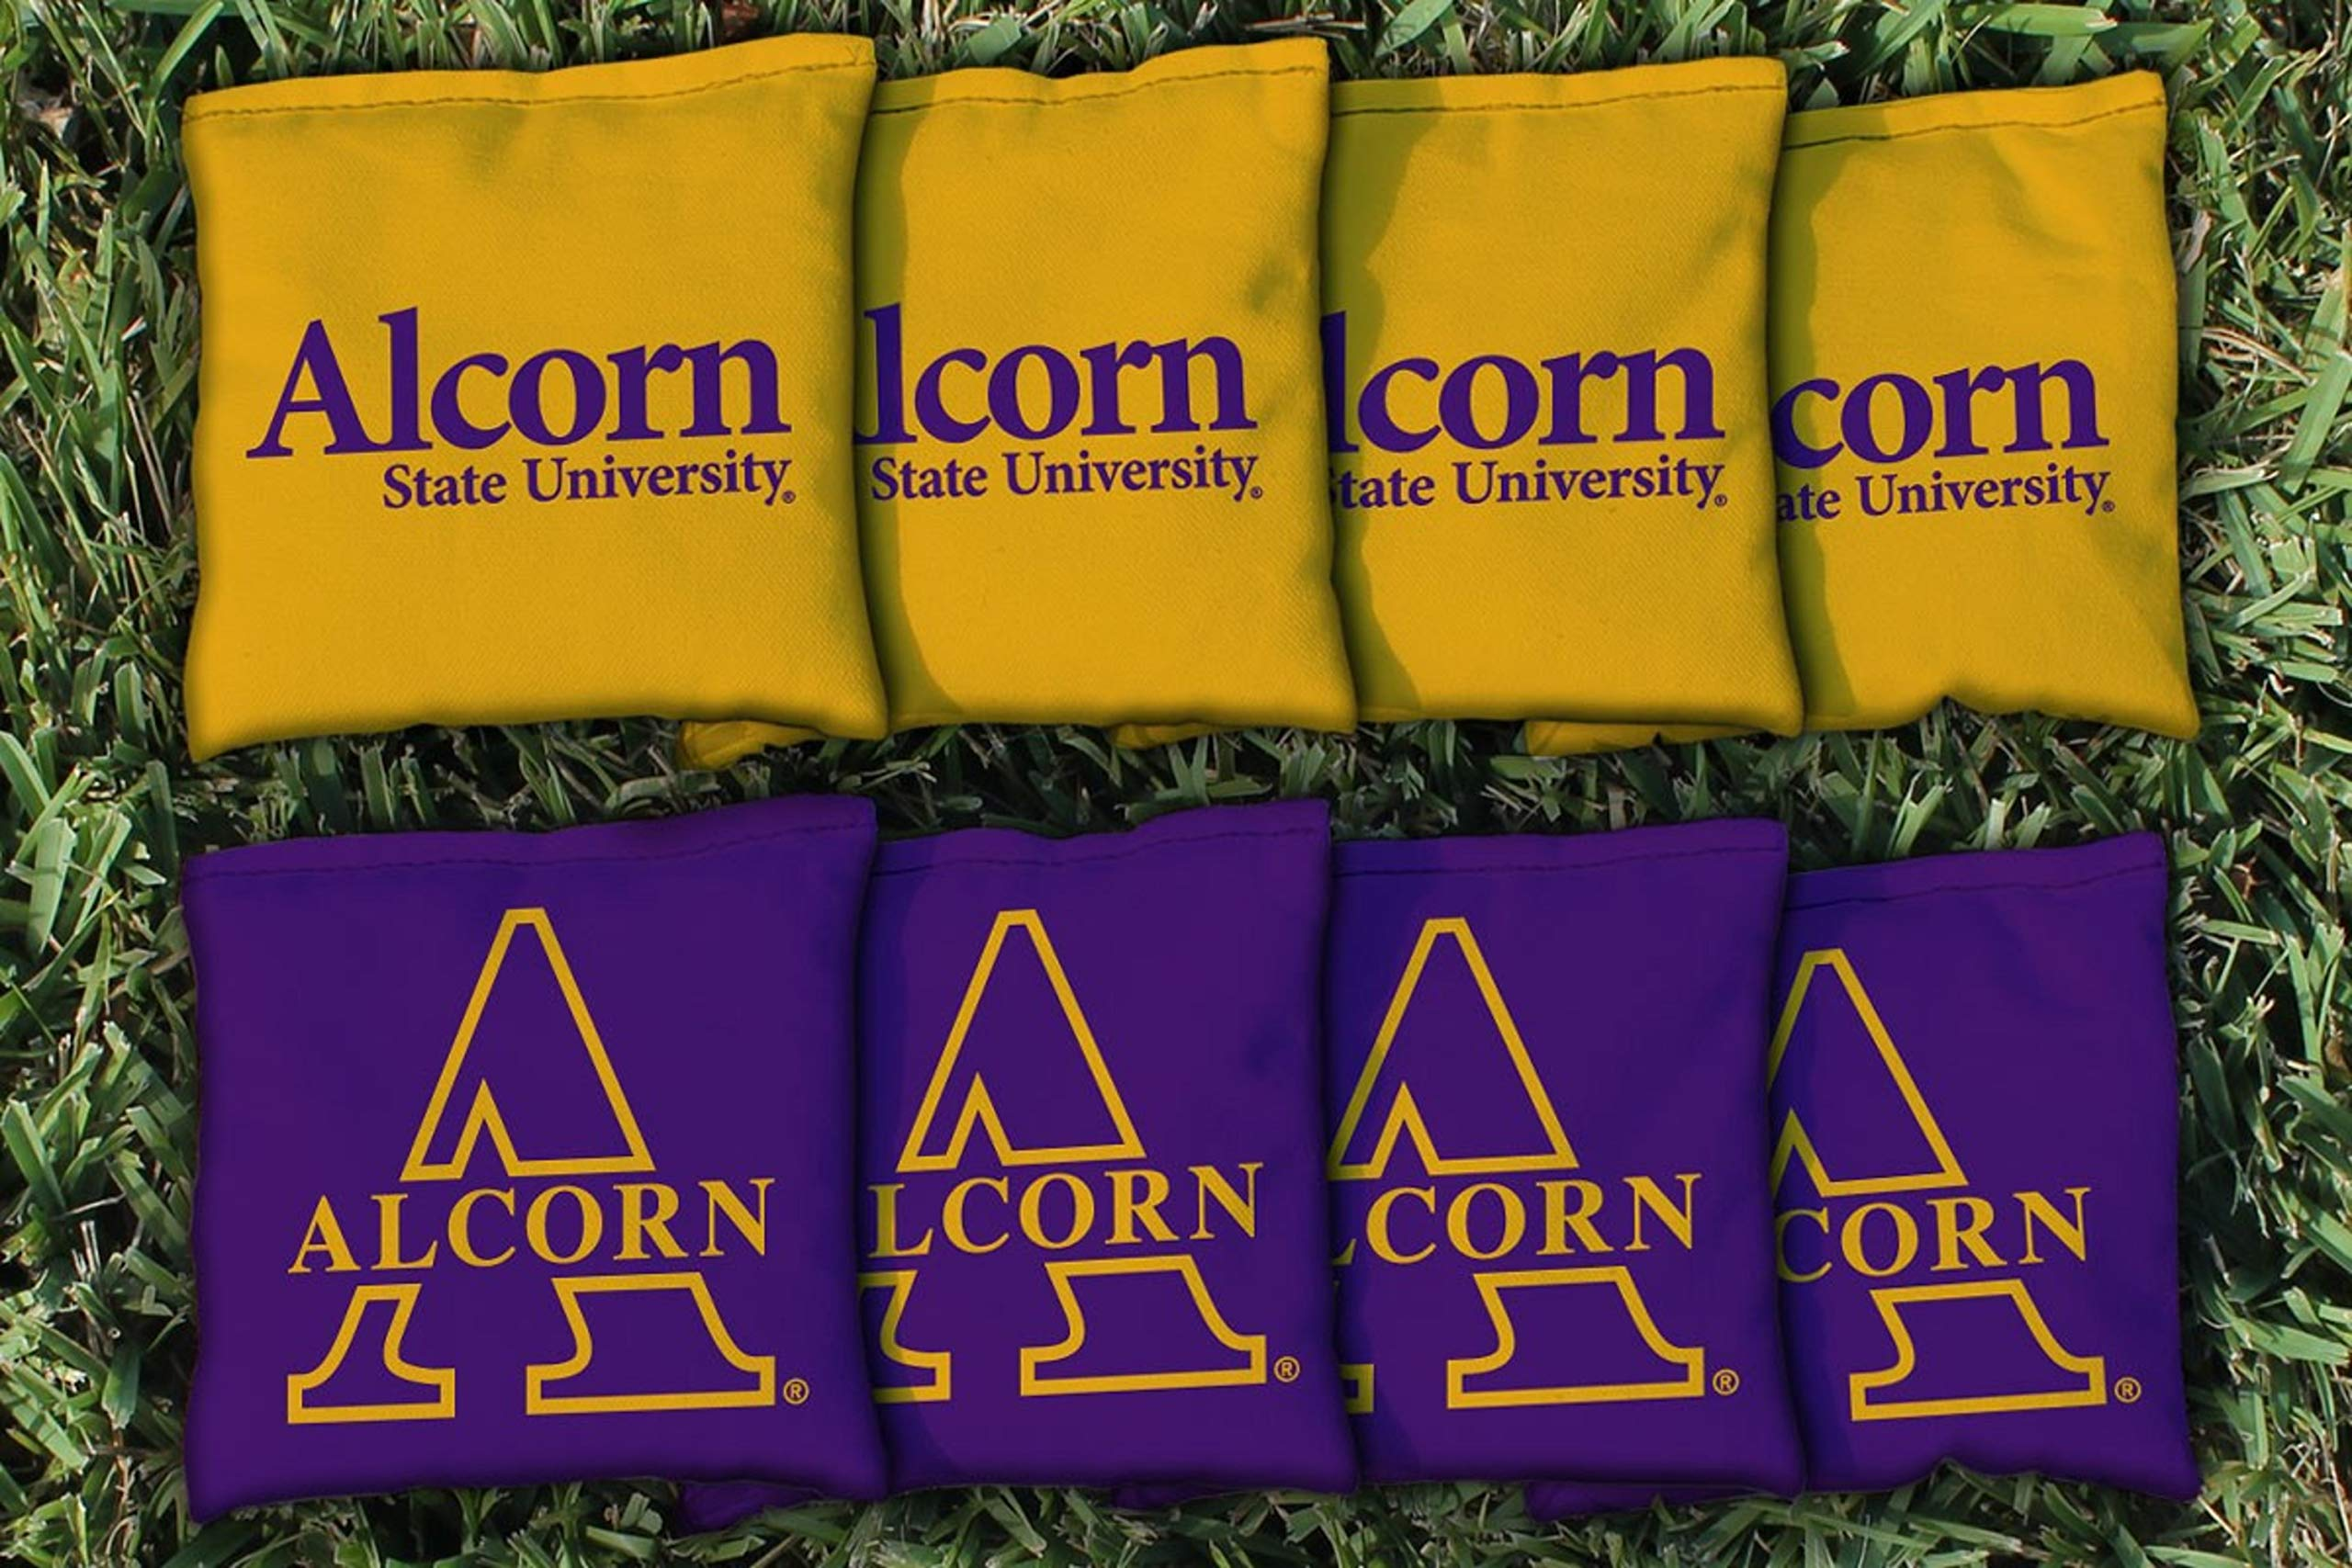 Victory Tailgate NCAA Collegiate Regulation Cornhole Game Bag Set (8 Bags Included, Corn-Filled) - Alcorn State Braves by Victory Tailgate